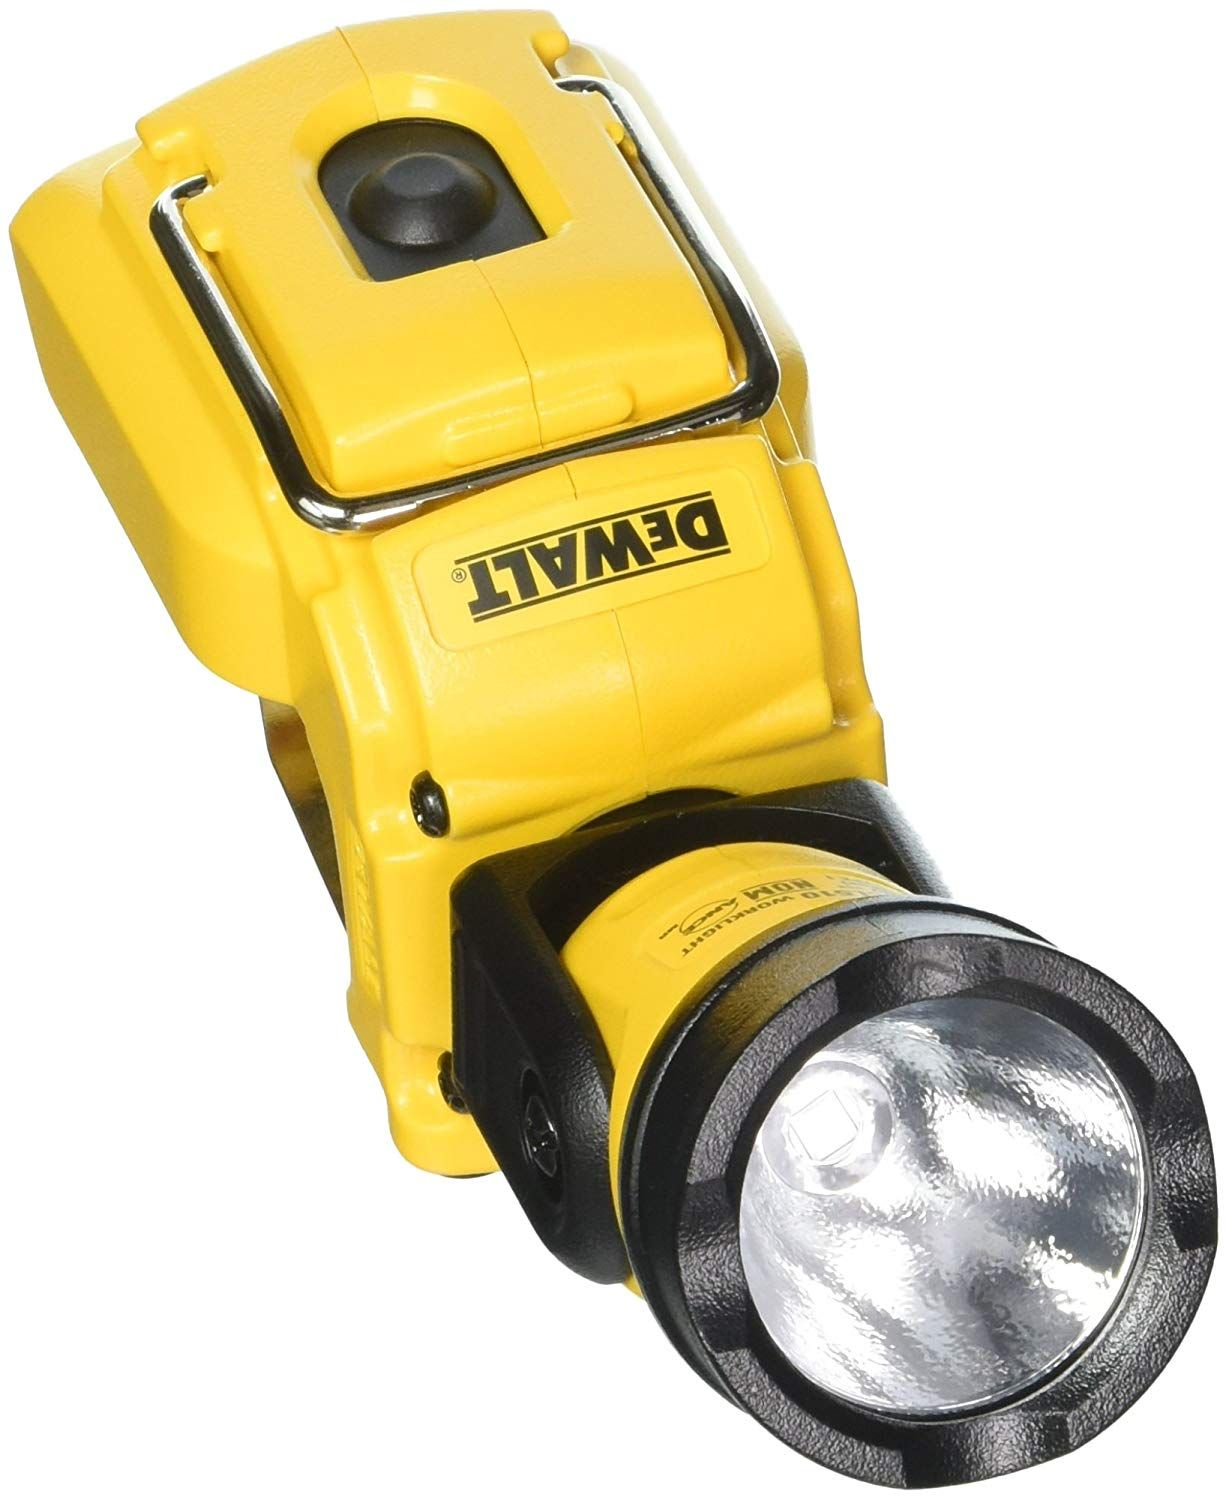 Dewalt Dcl510 12 Volt Max Led Worklight See The Photo Link Even More Details This Is An Affiliate Link Lights Lante Led Work Light Dewalt Work Lights